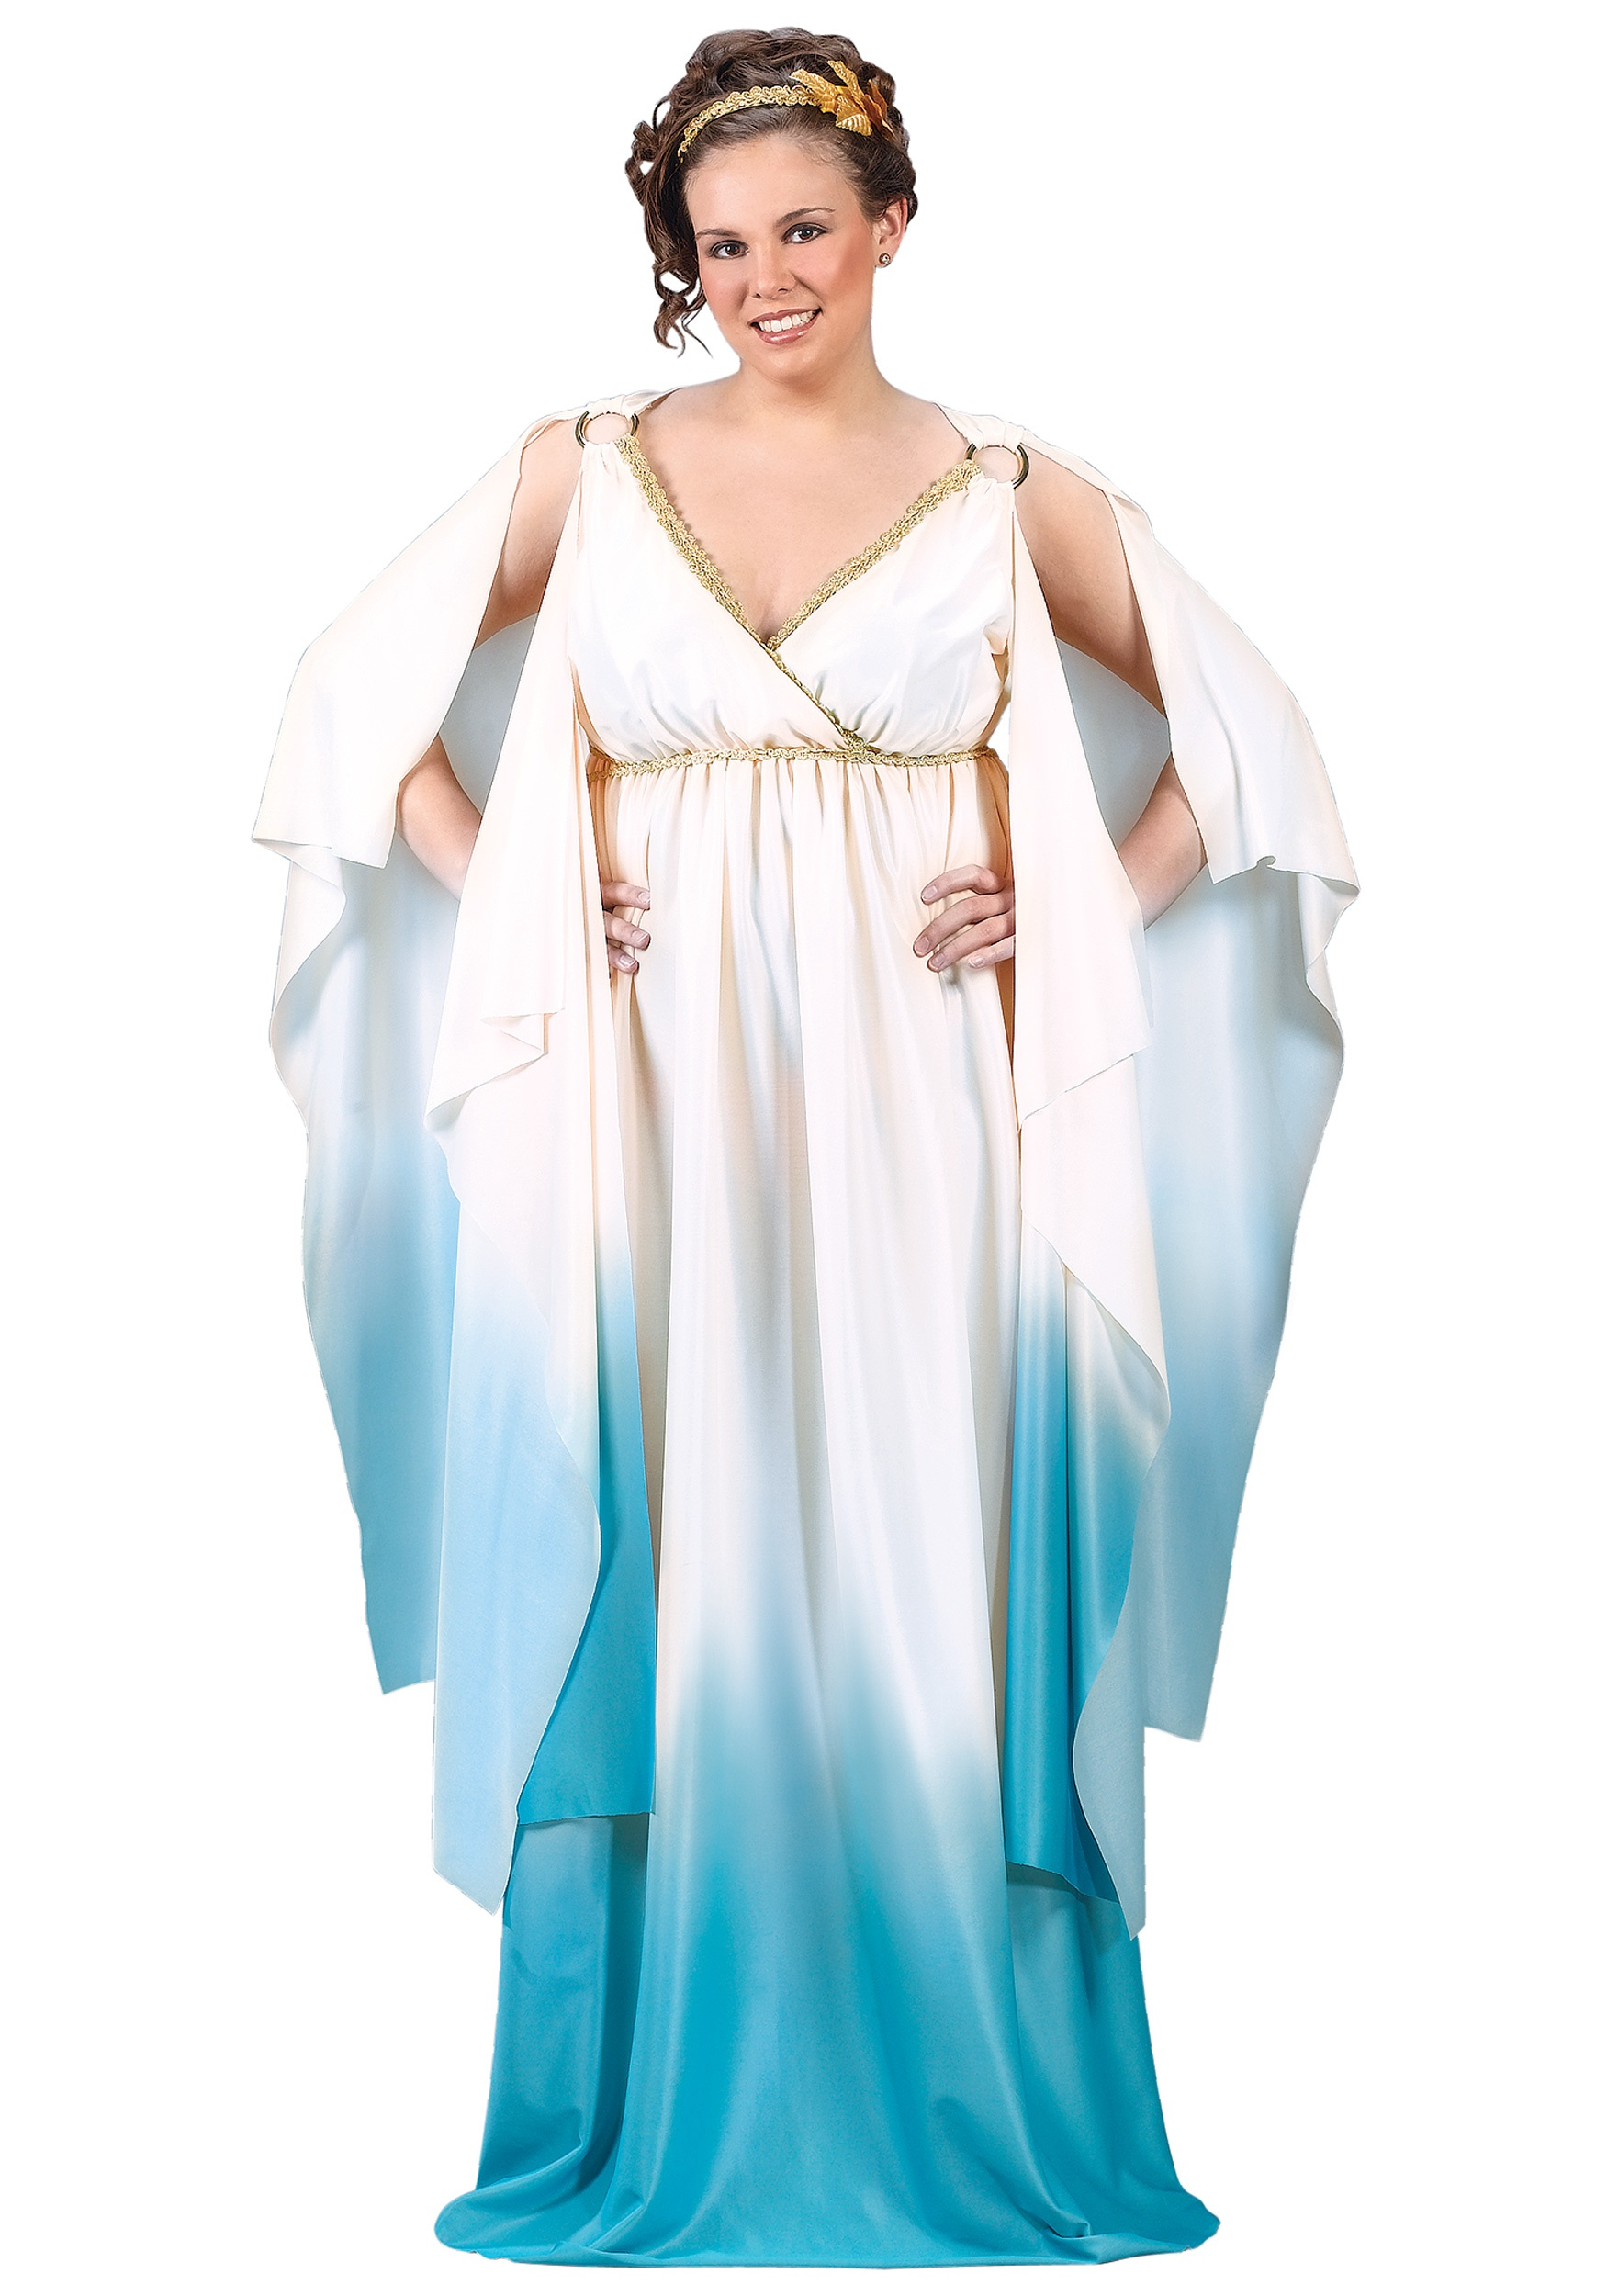 Plus Size Aphrodite Costume - Womens Plus Size Greek ...Greek Goddess Aphrodite With Clothes